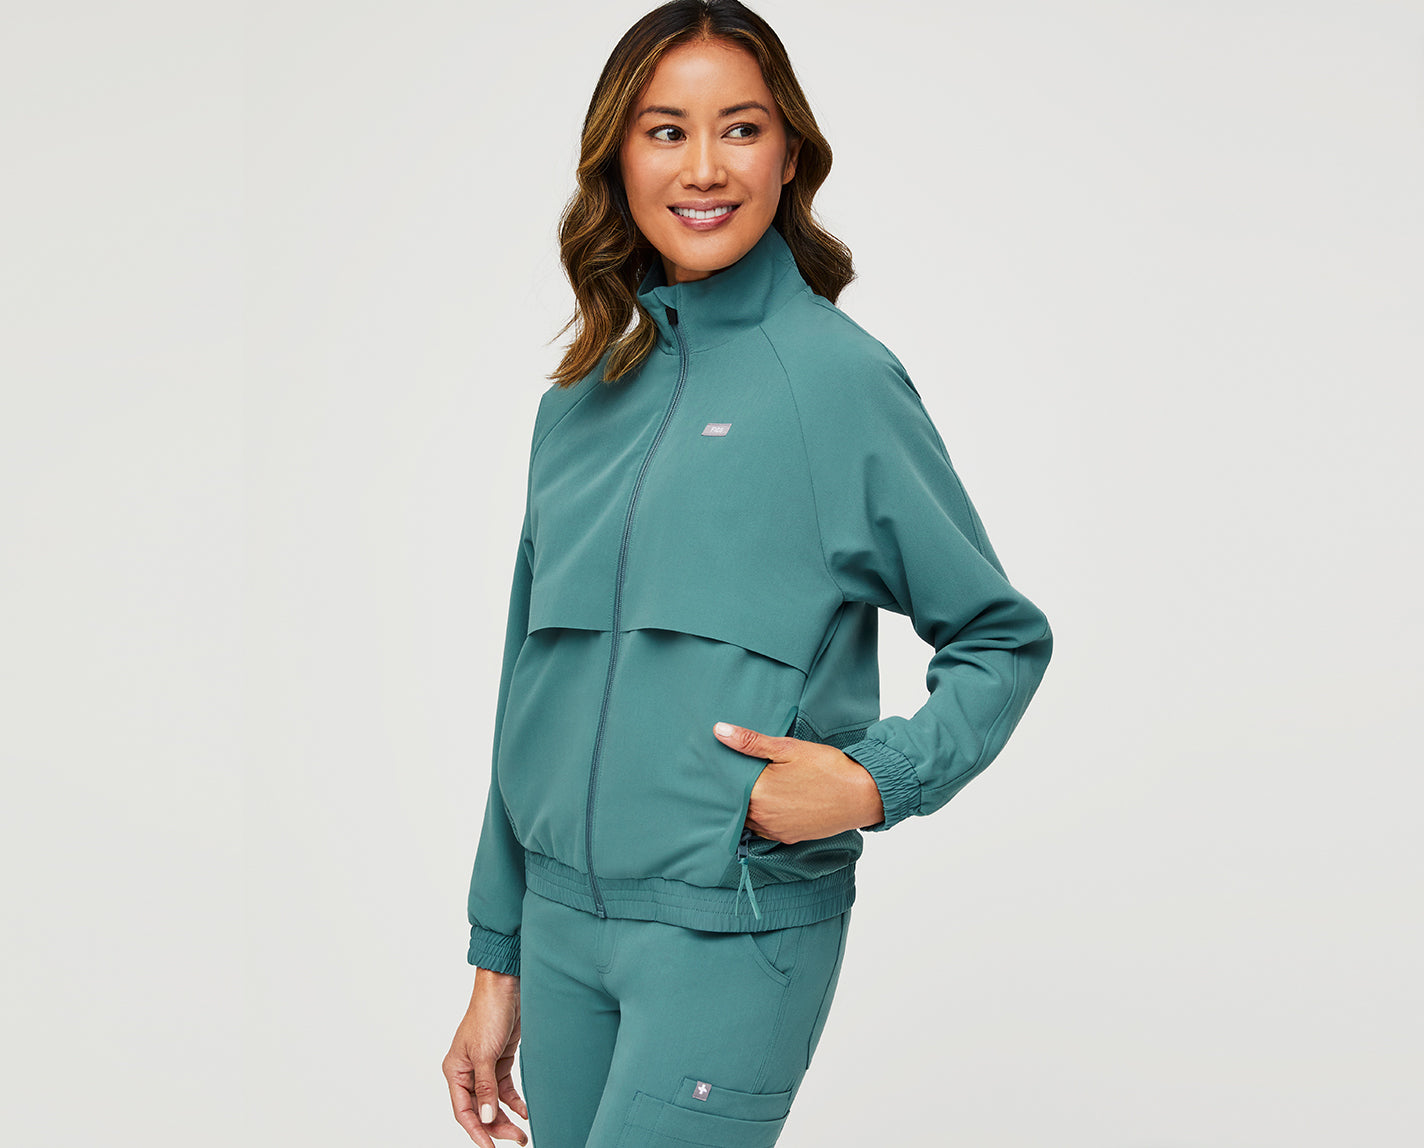 Cool on every layer. The Sydney Scrub Jacket features a front yoke vent for airflow and ventilation, a mesh lining for extra breathability, TPU trim and detailing, five functional pockets and both our proprietary FIONx fabric and eco-friendly FIONlite fabric. Like, the coolest.